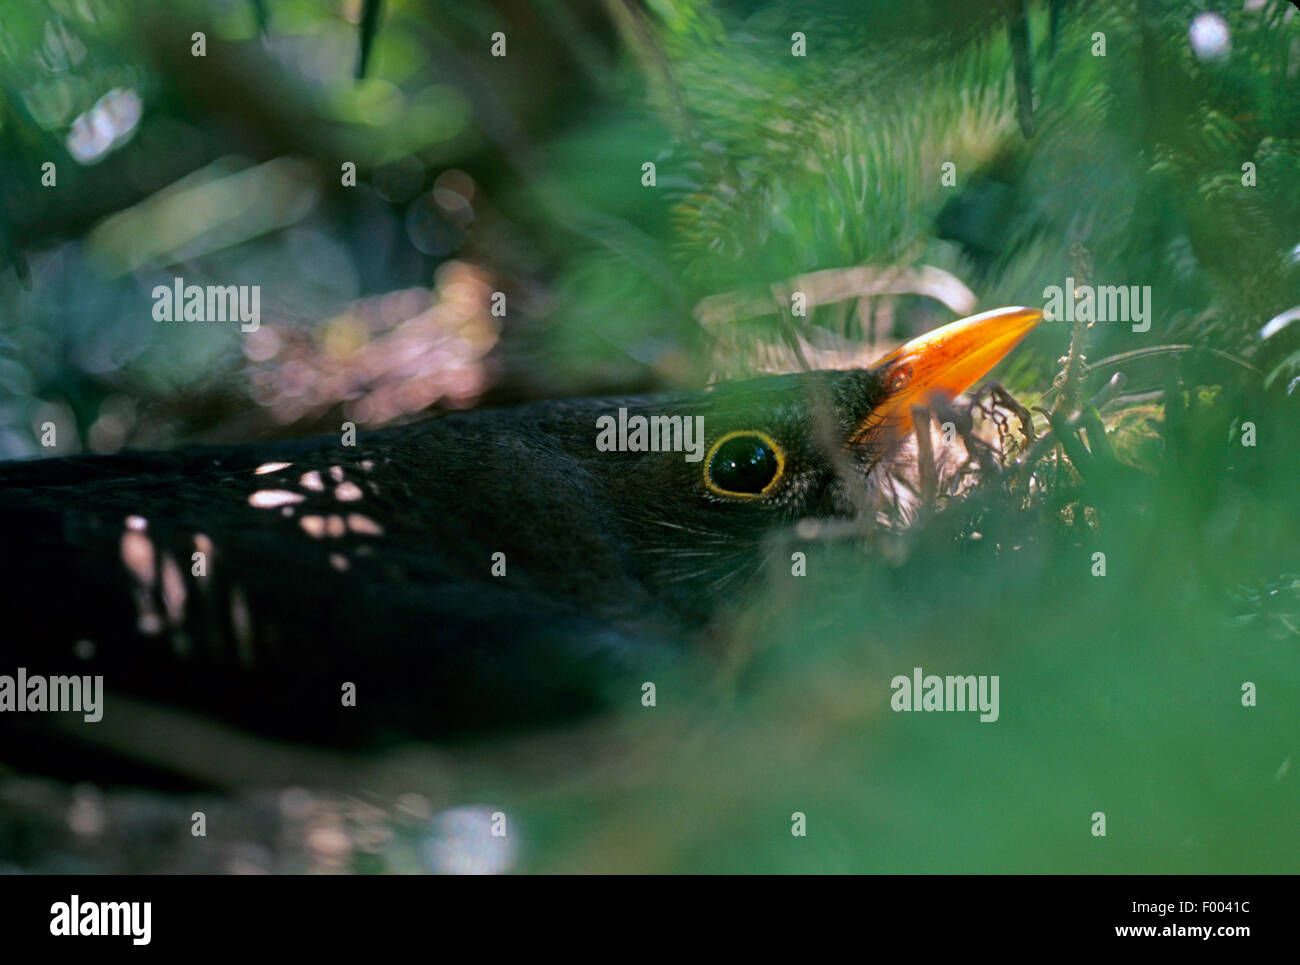 blackbird (Turdus merula), breeding male, Germany - Stock Image